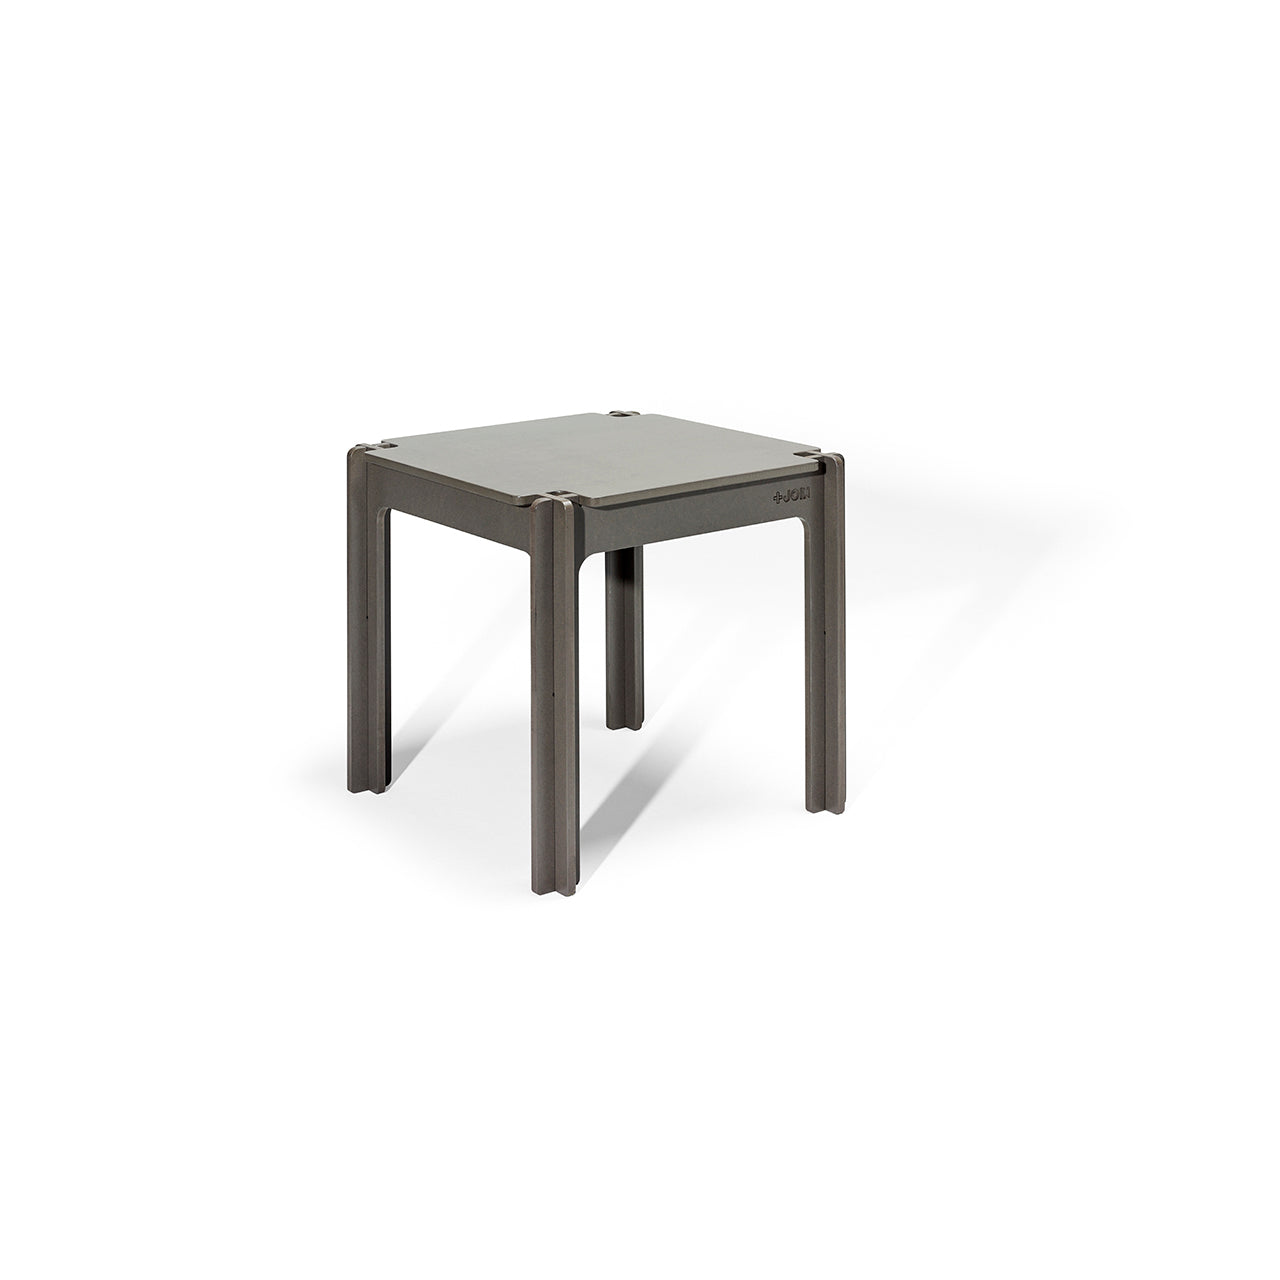 Rubble Interior Design Marketplace, Grey Valchromat Minuto 80 Small Table +JOIN by Designer Diogo Belo Mendes